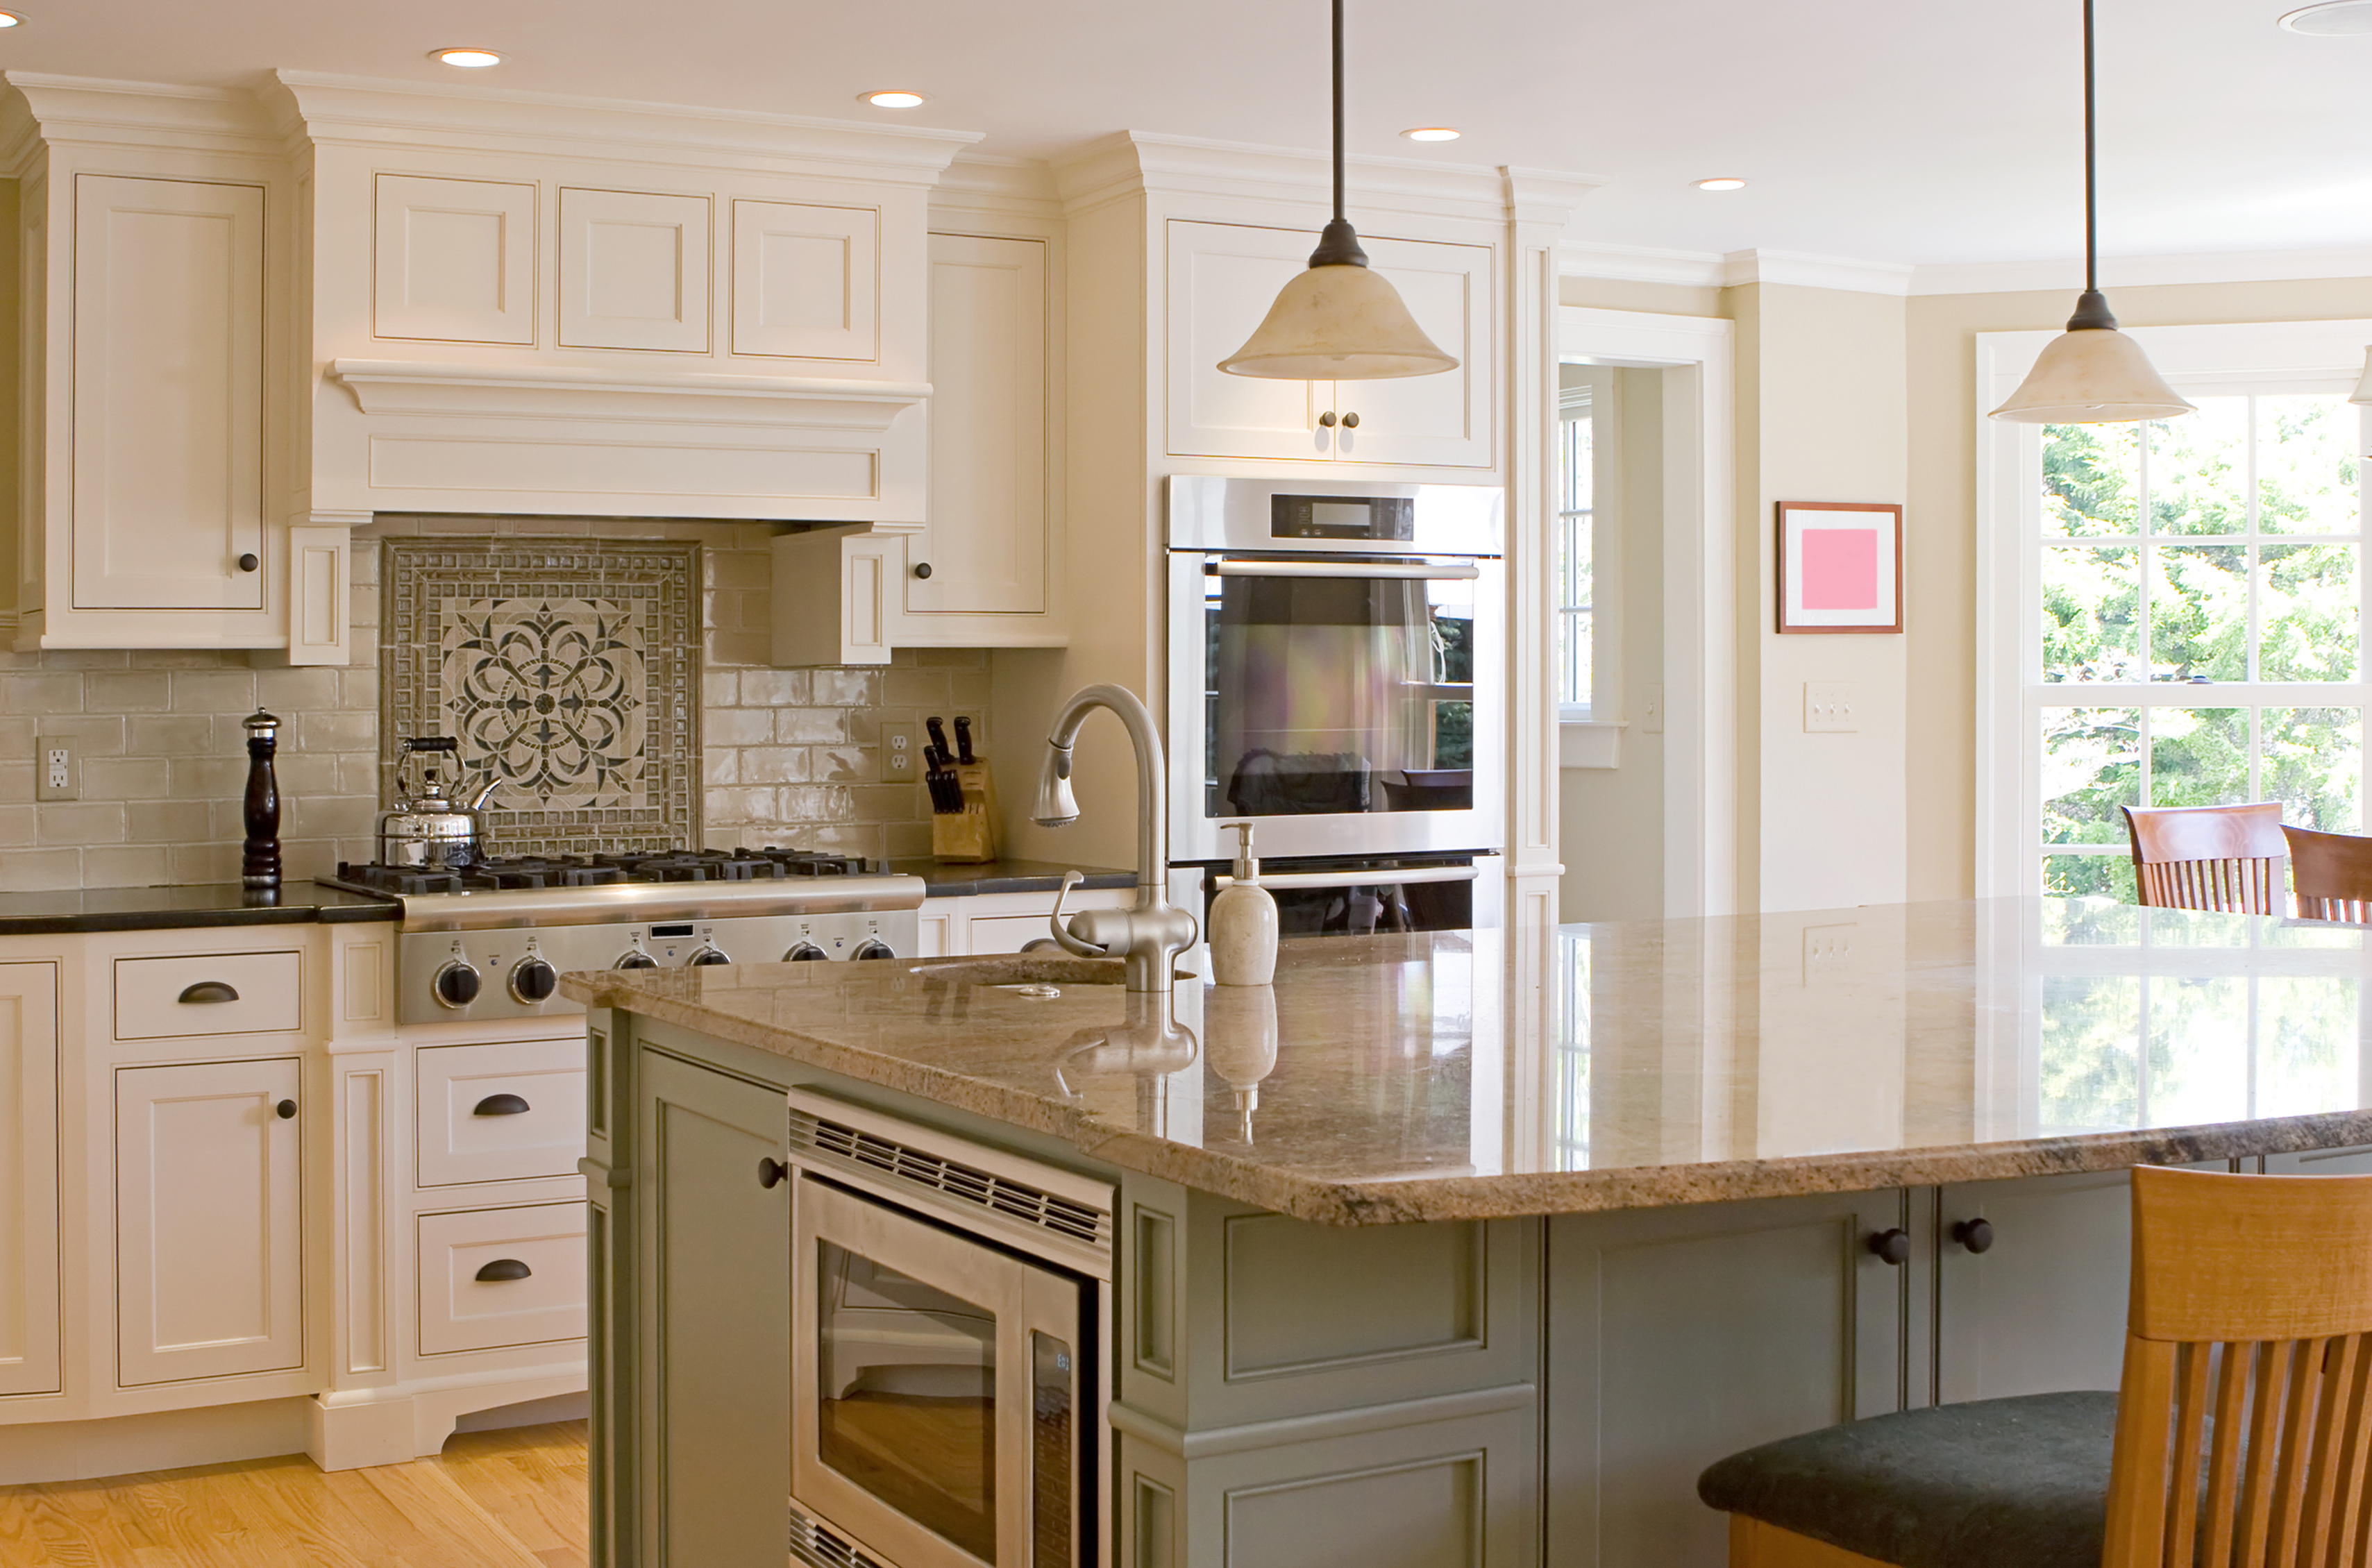 Kitchen Island Overhang the standard overhang of a kitchen countertop | home guides | sf gate